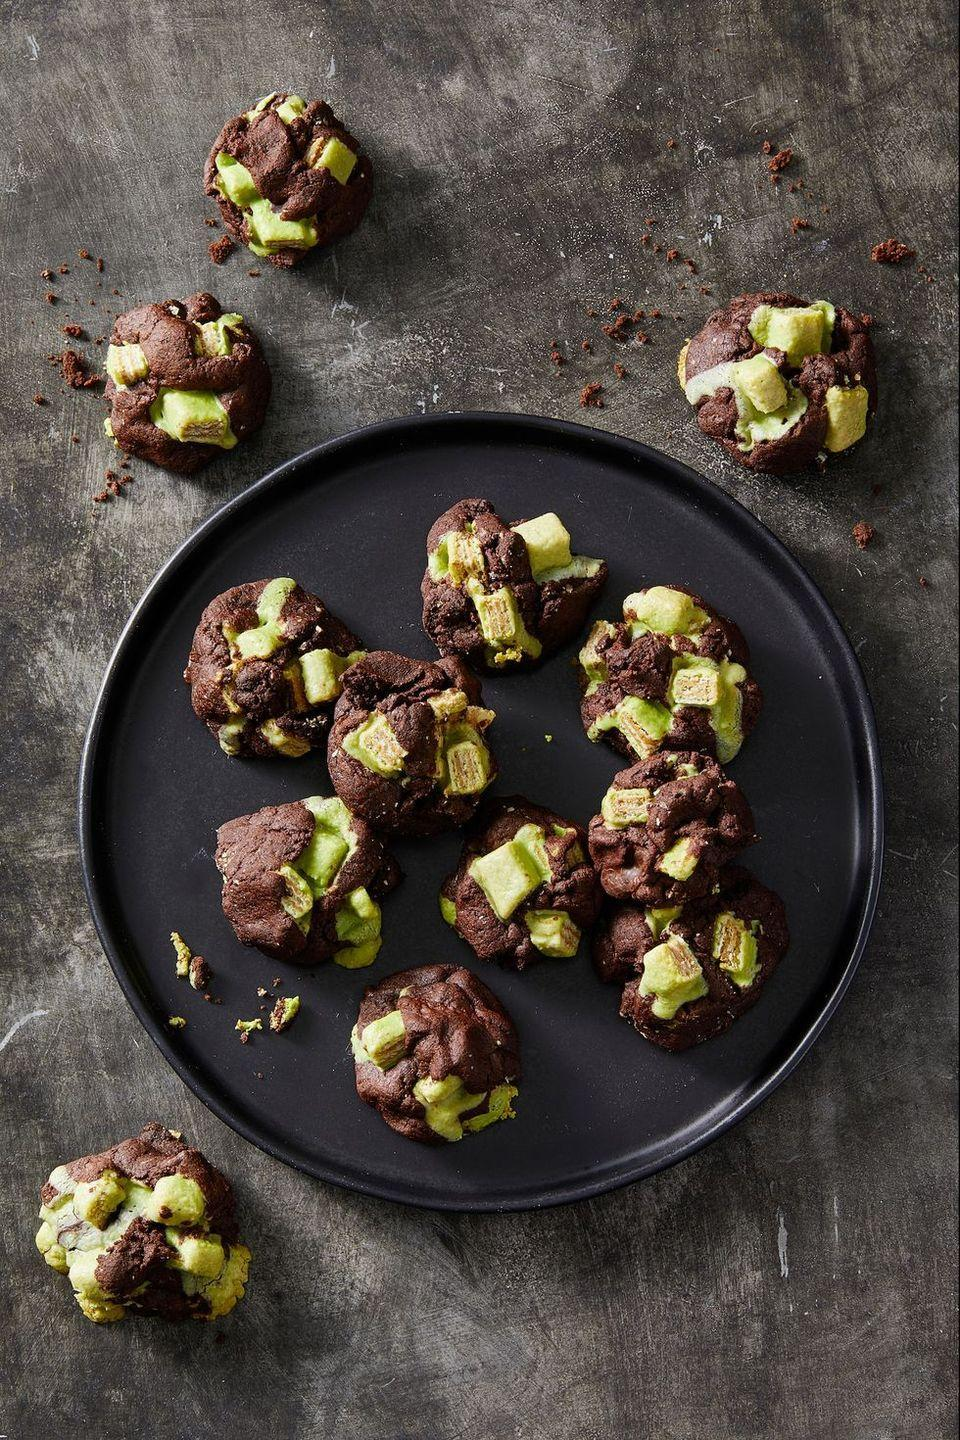 """<p>Green candy pieces add a ghoulish touch to a devilish dark chocolate cookie.</p><p><em><a href=""""https://www.goodhousekeeping.com/food-recipes/a28541666/dark-chocolate-candy-cookies-recipe/"""" rel=""""nofollow noopener"""" target=""""_blank"""" data-ylk=""""slk:Get the recipe for Dark Chocolate Candy Cookies »"""" class=""""link rapid-noclick-resp"""">Get the recipe for Dark Chocolate Candy Cookies »</a></em></p>"""